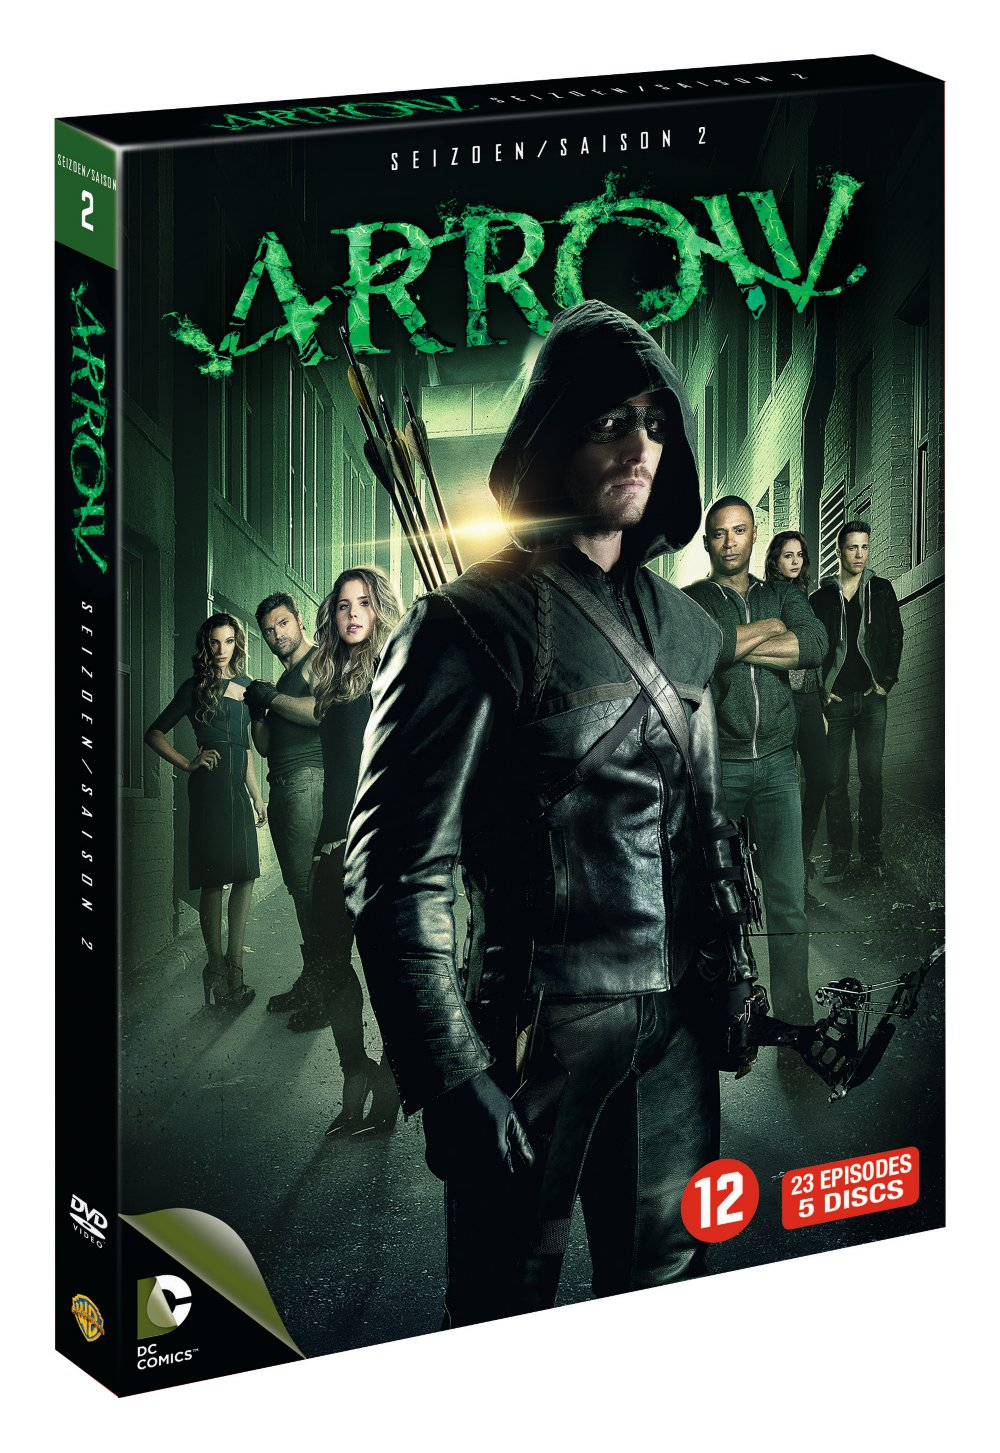 Arrow Seizoen 2 DVD